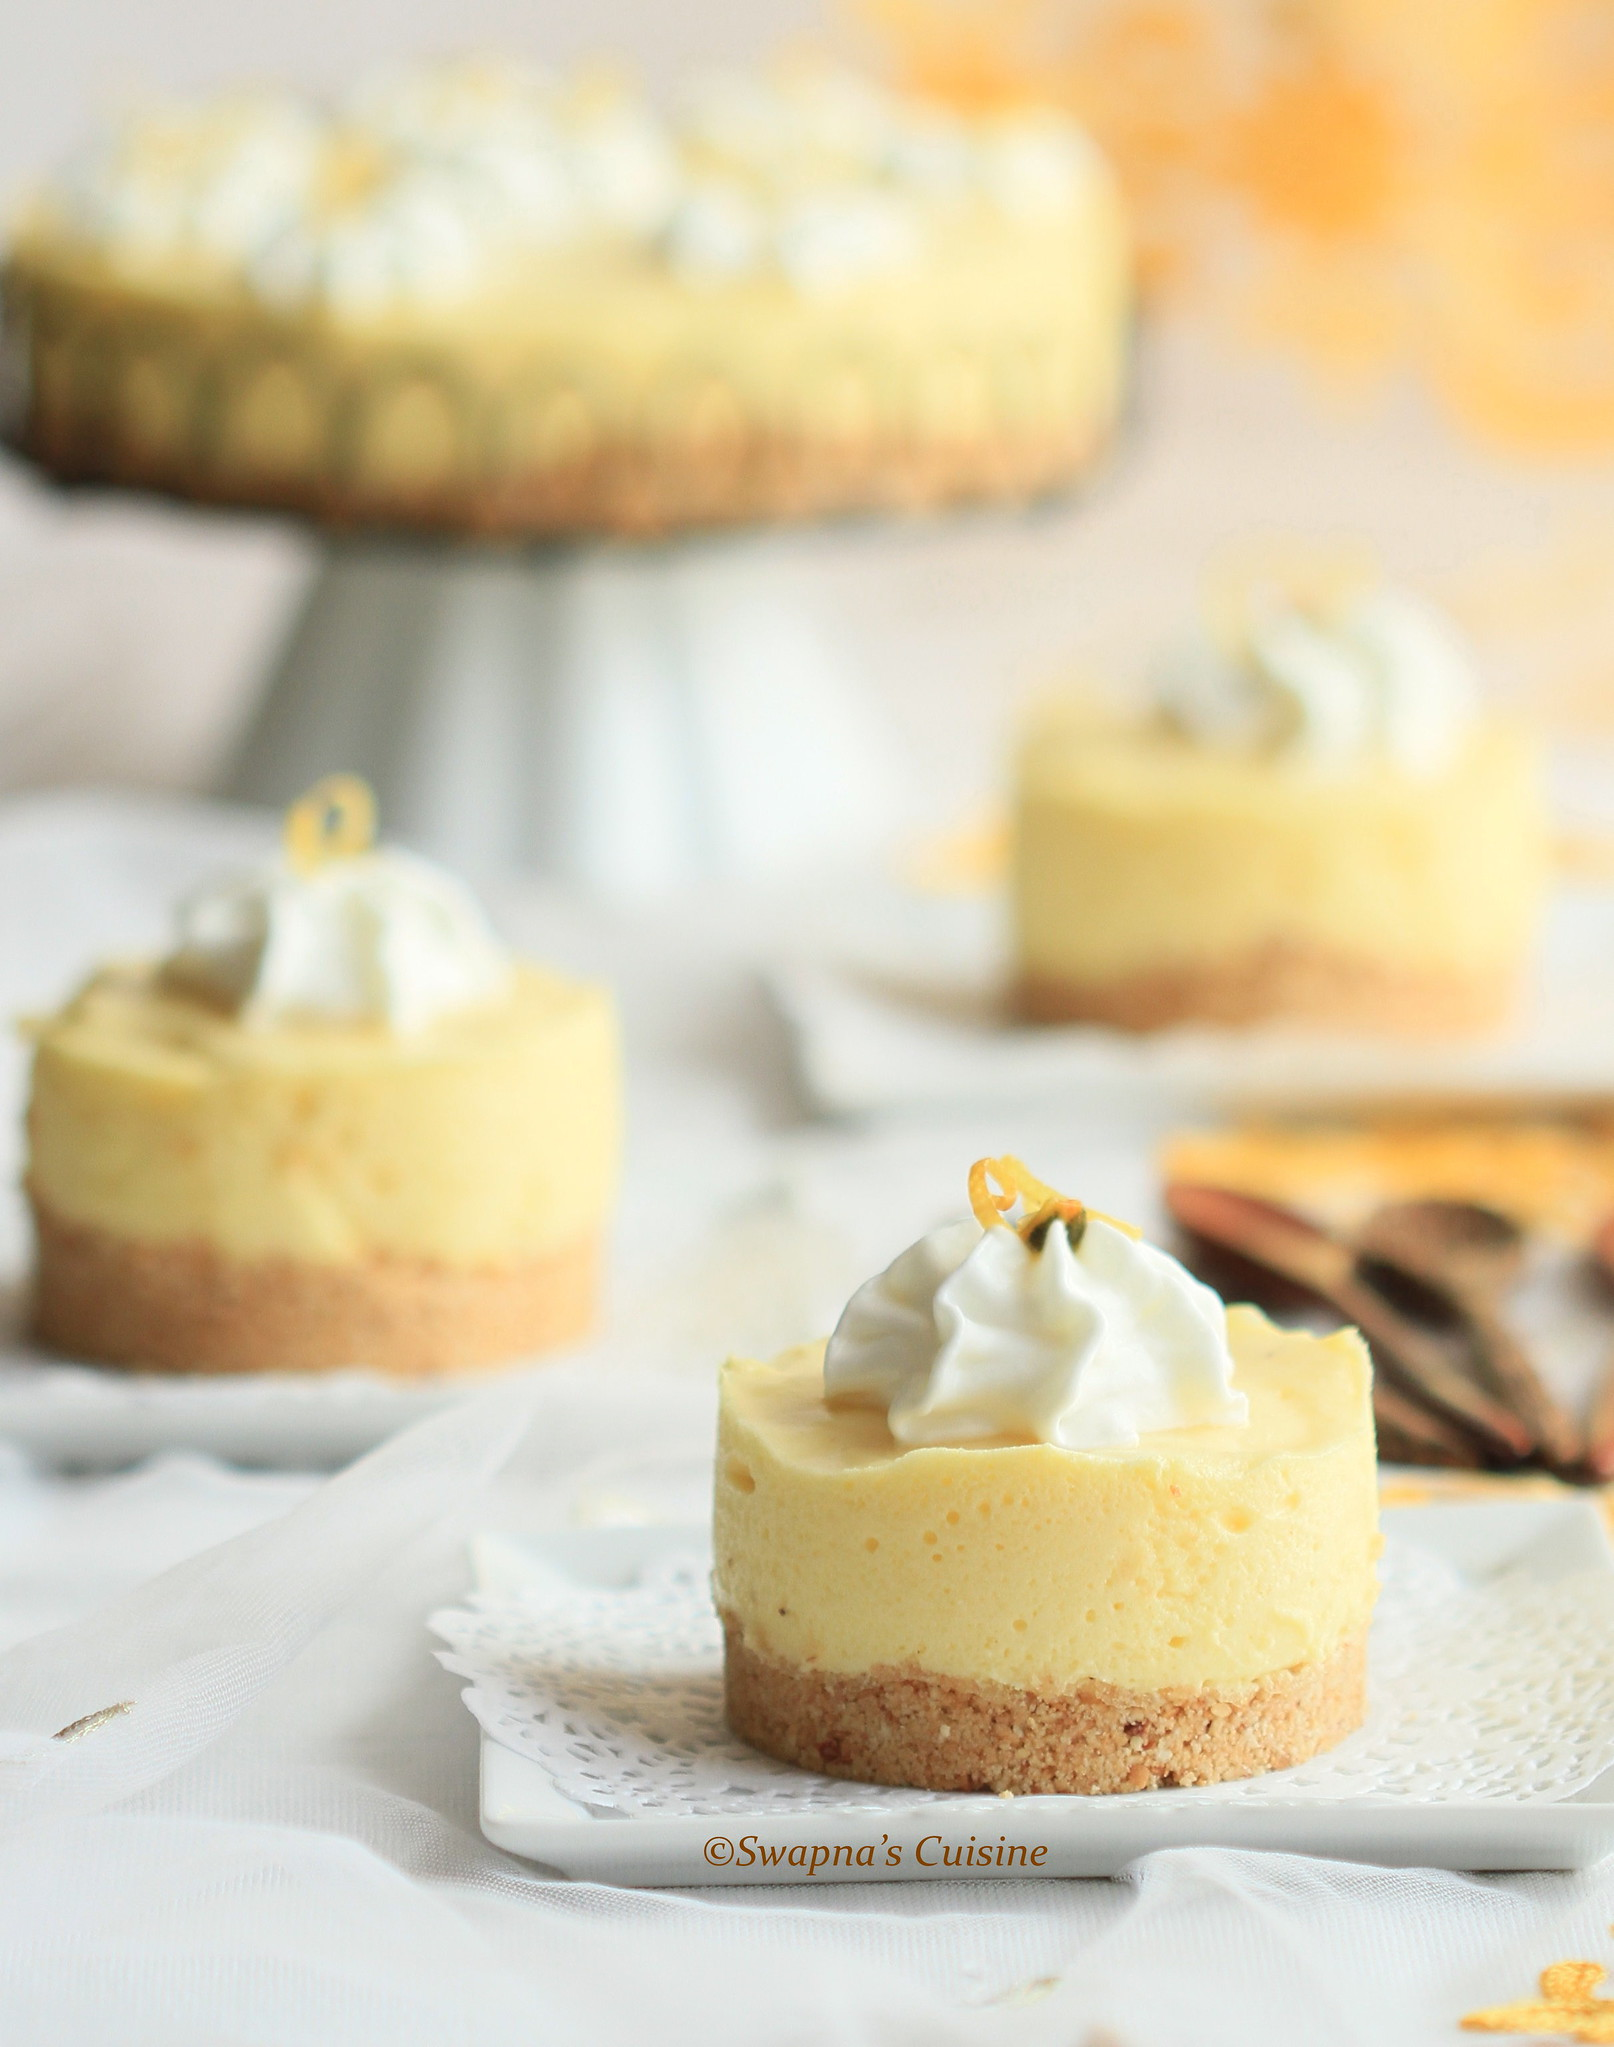 Passionfruit Pie